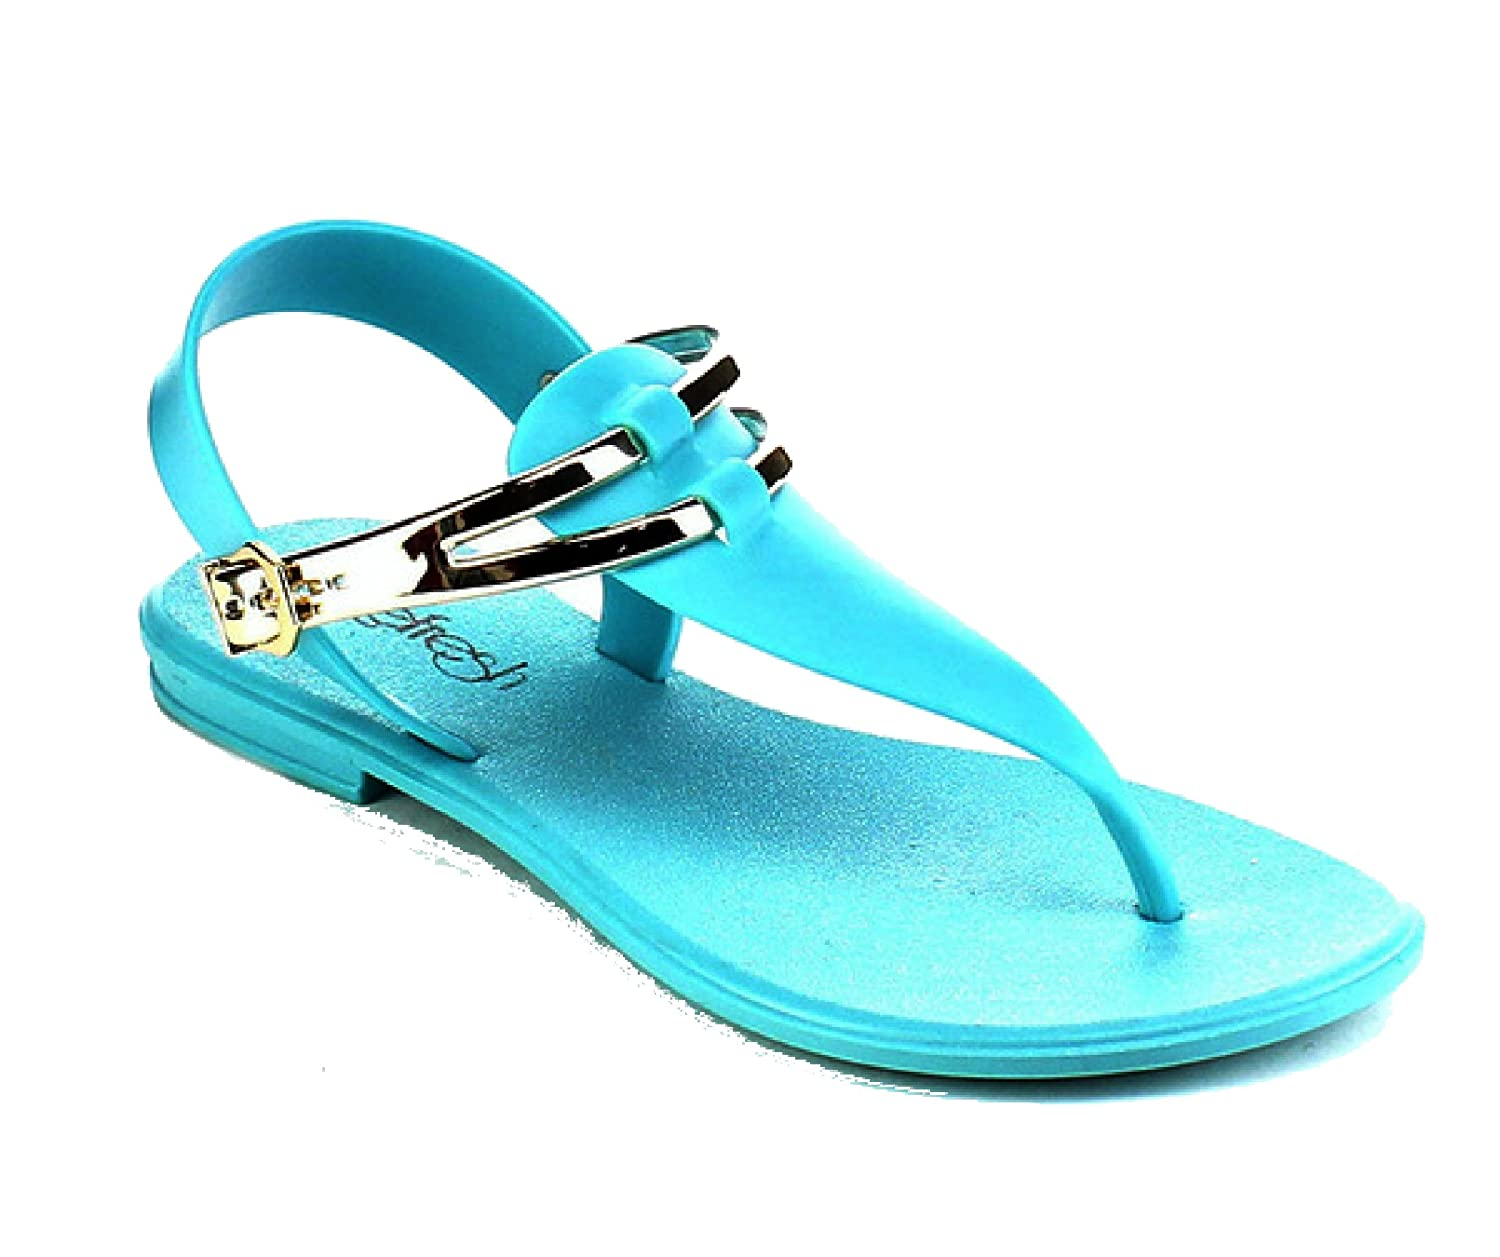 Refresh SAHARA Womens T-Strap Jelly Thong Adjustable Buckle Flat Heel Fashionable Casual Sandals B01GGSXPKQ 6 B(M) US|Turquoise